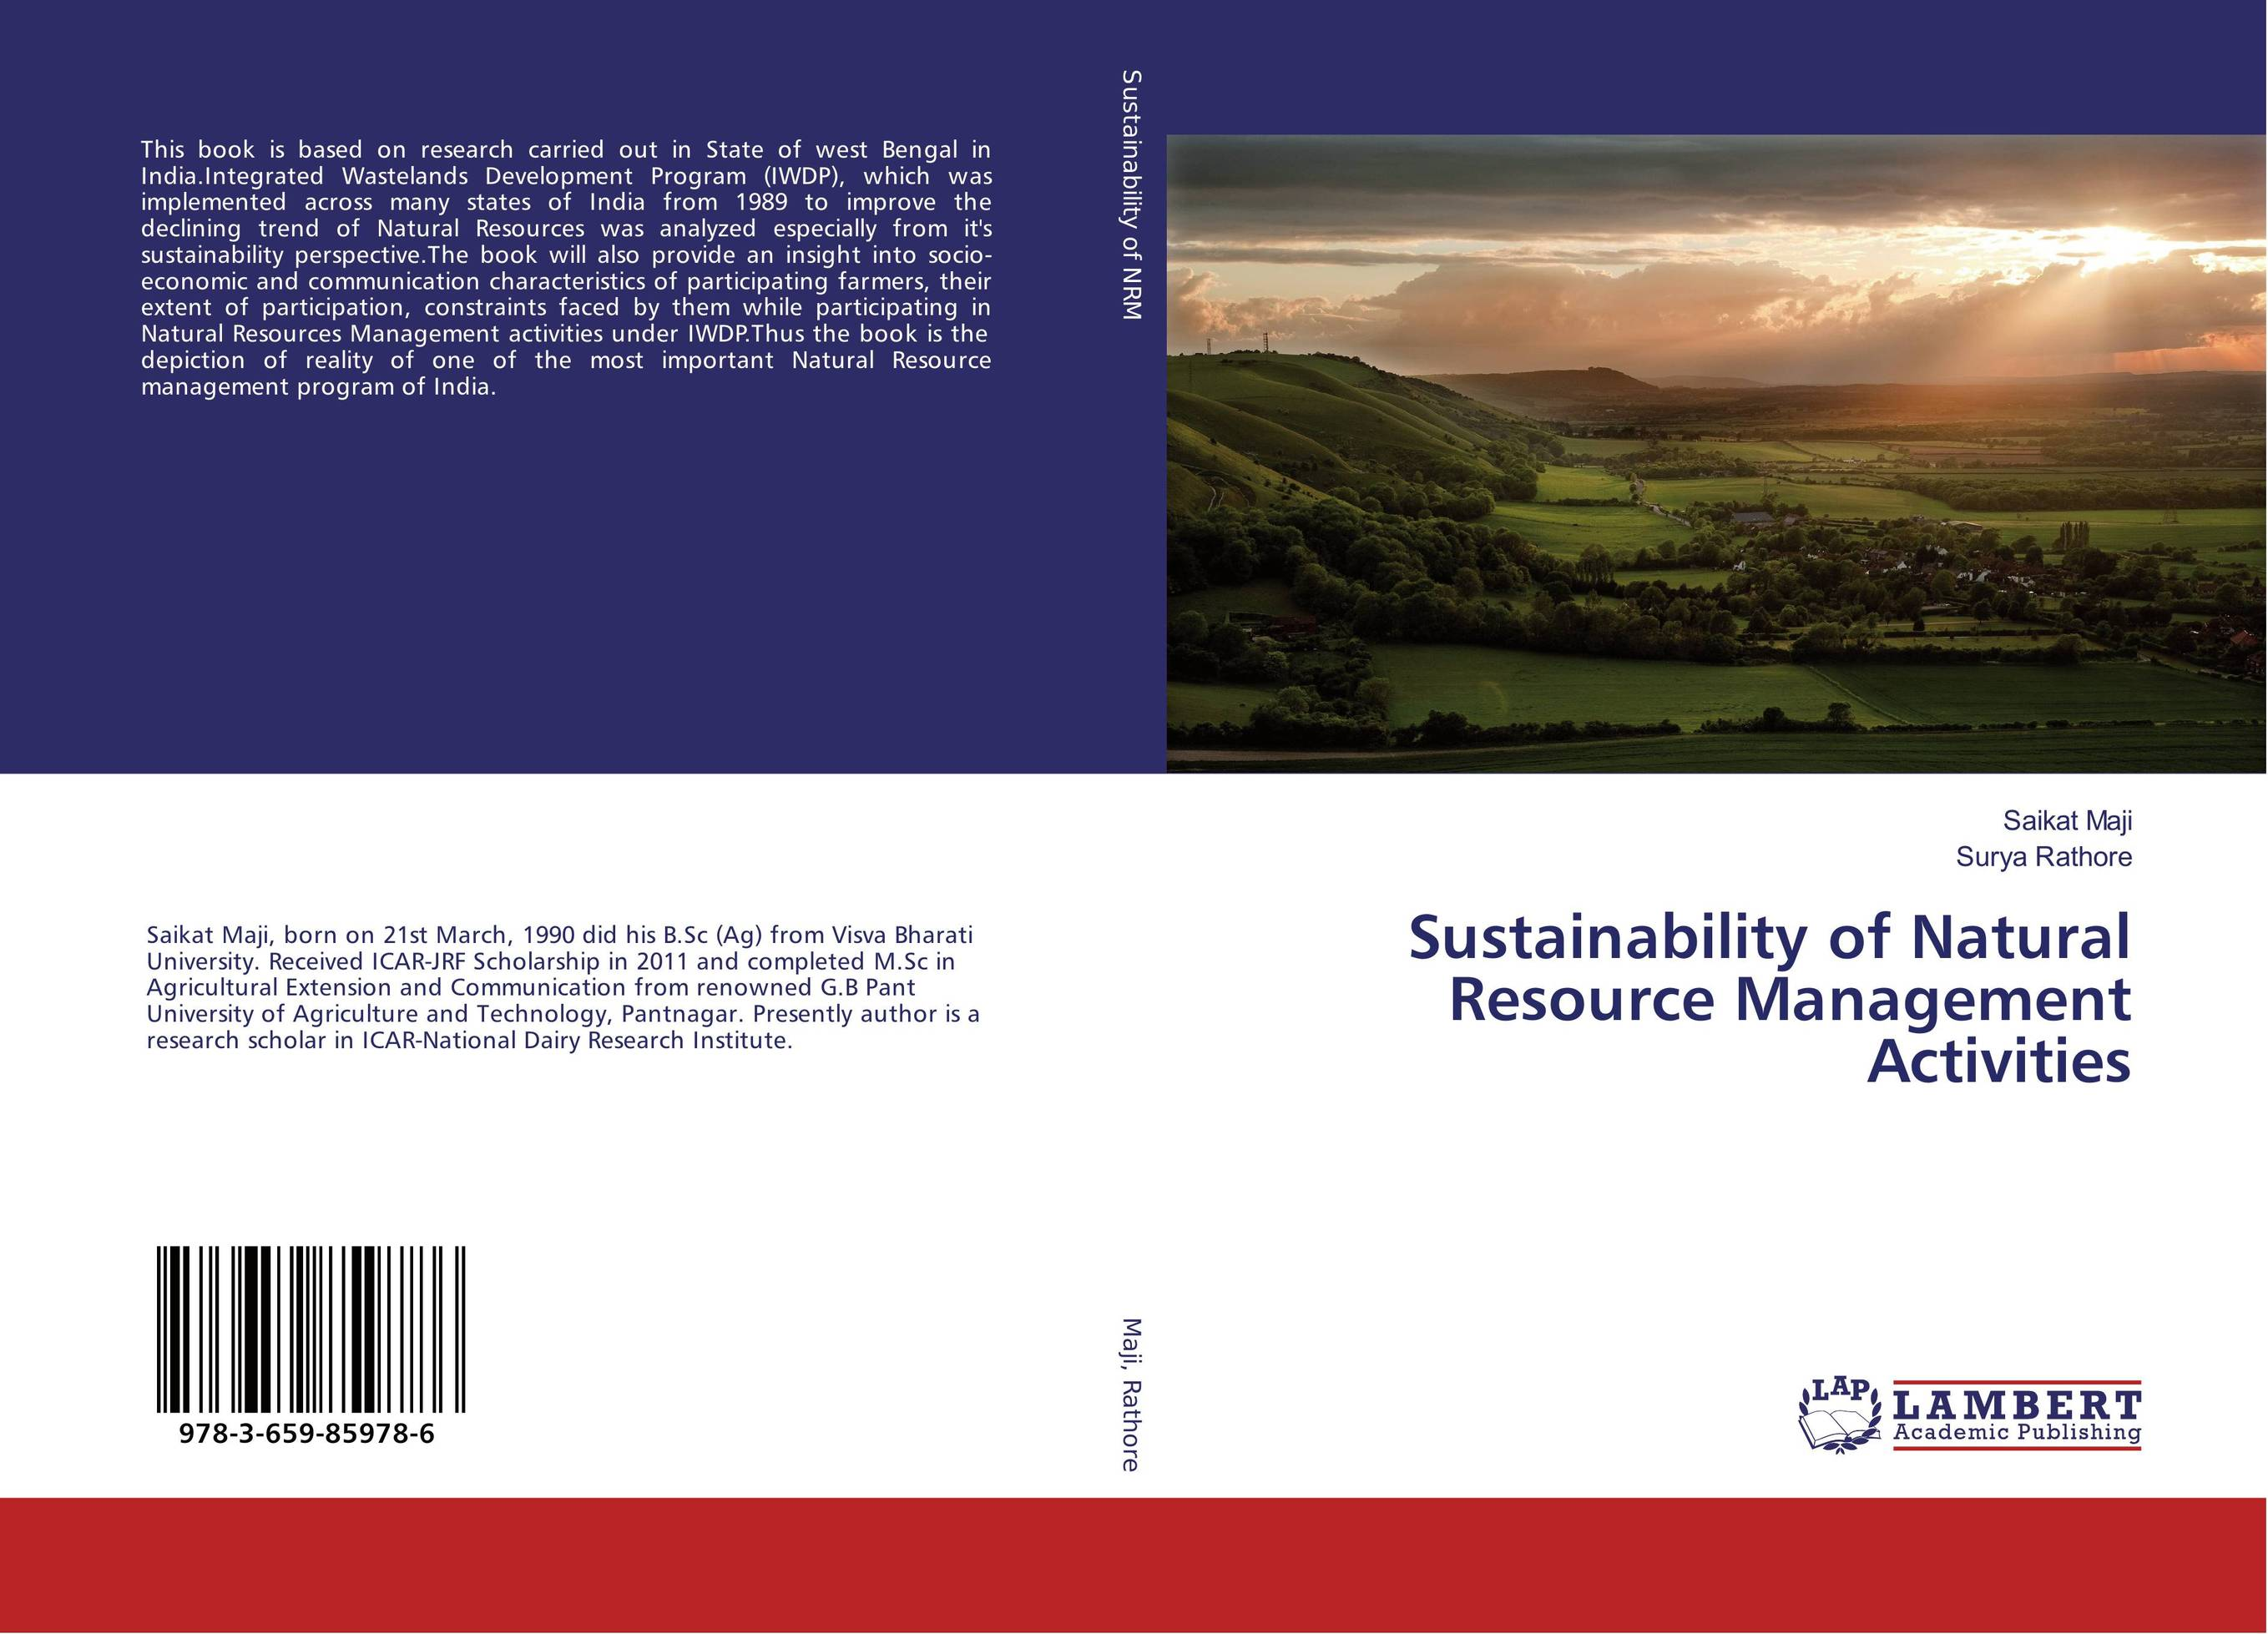 Sustainability of Natural Resource Management Activities